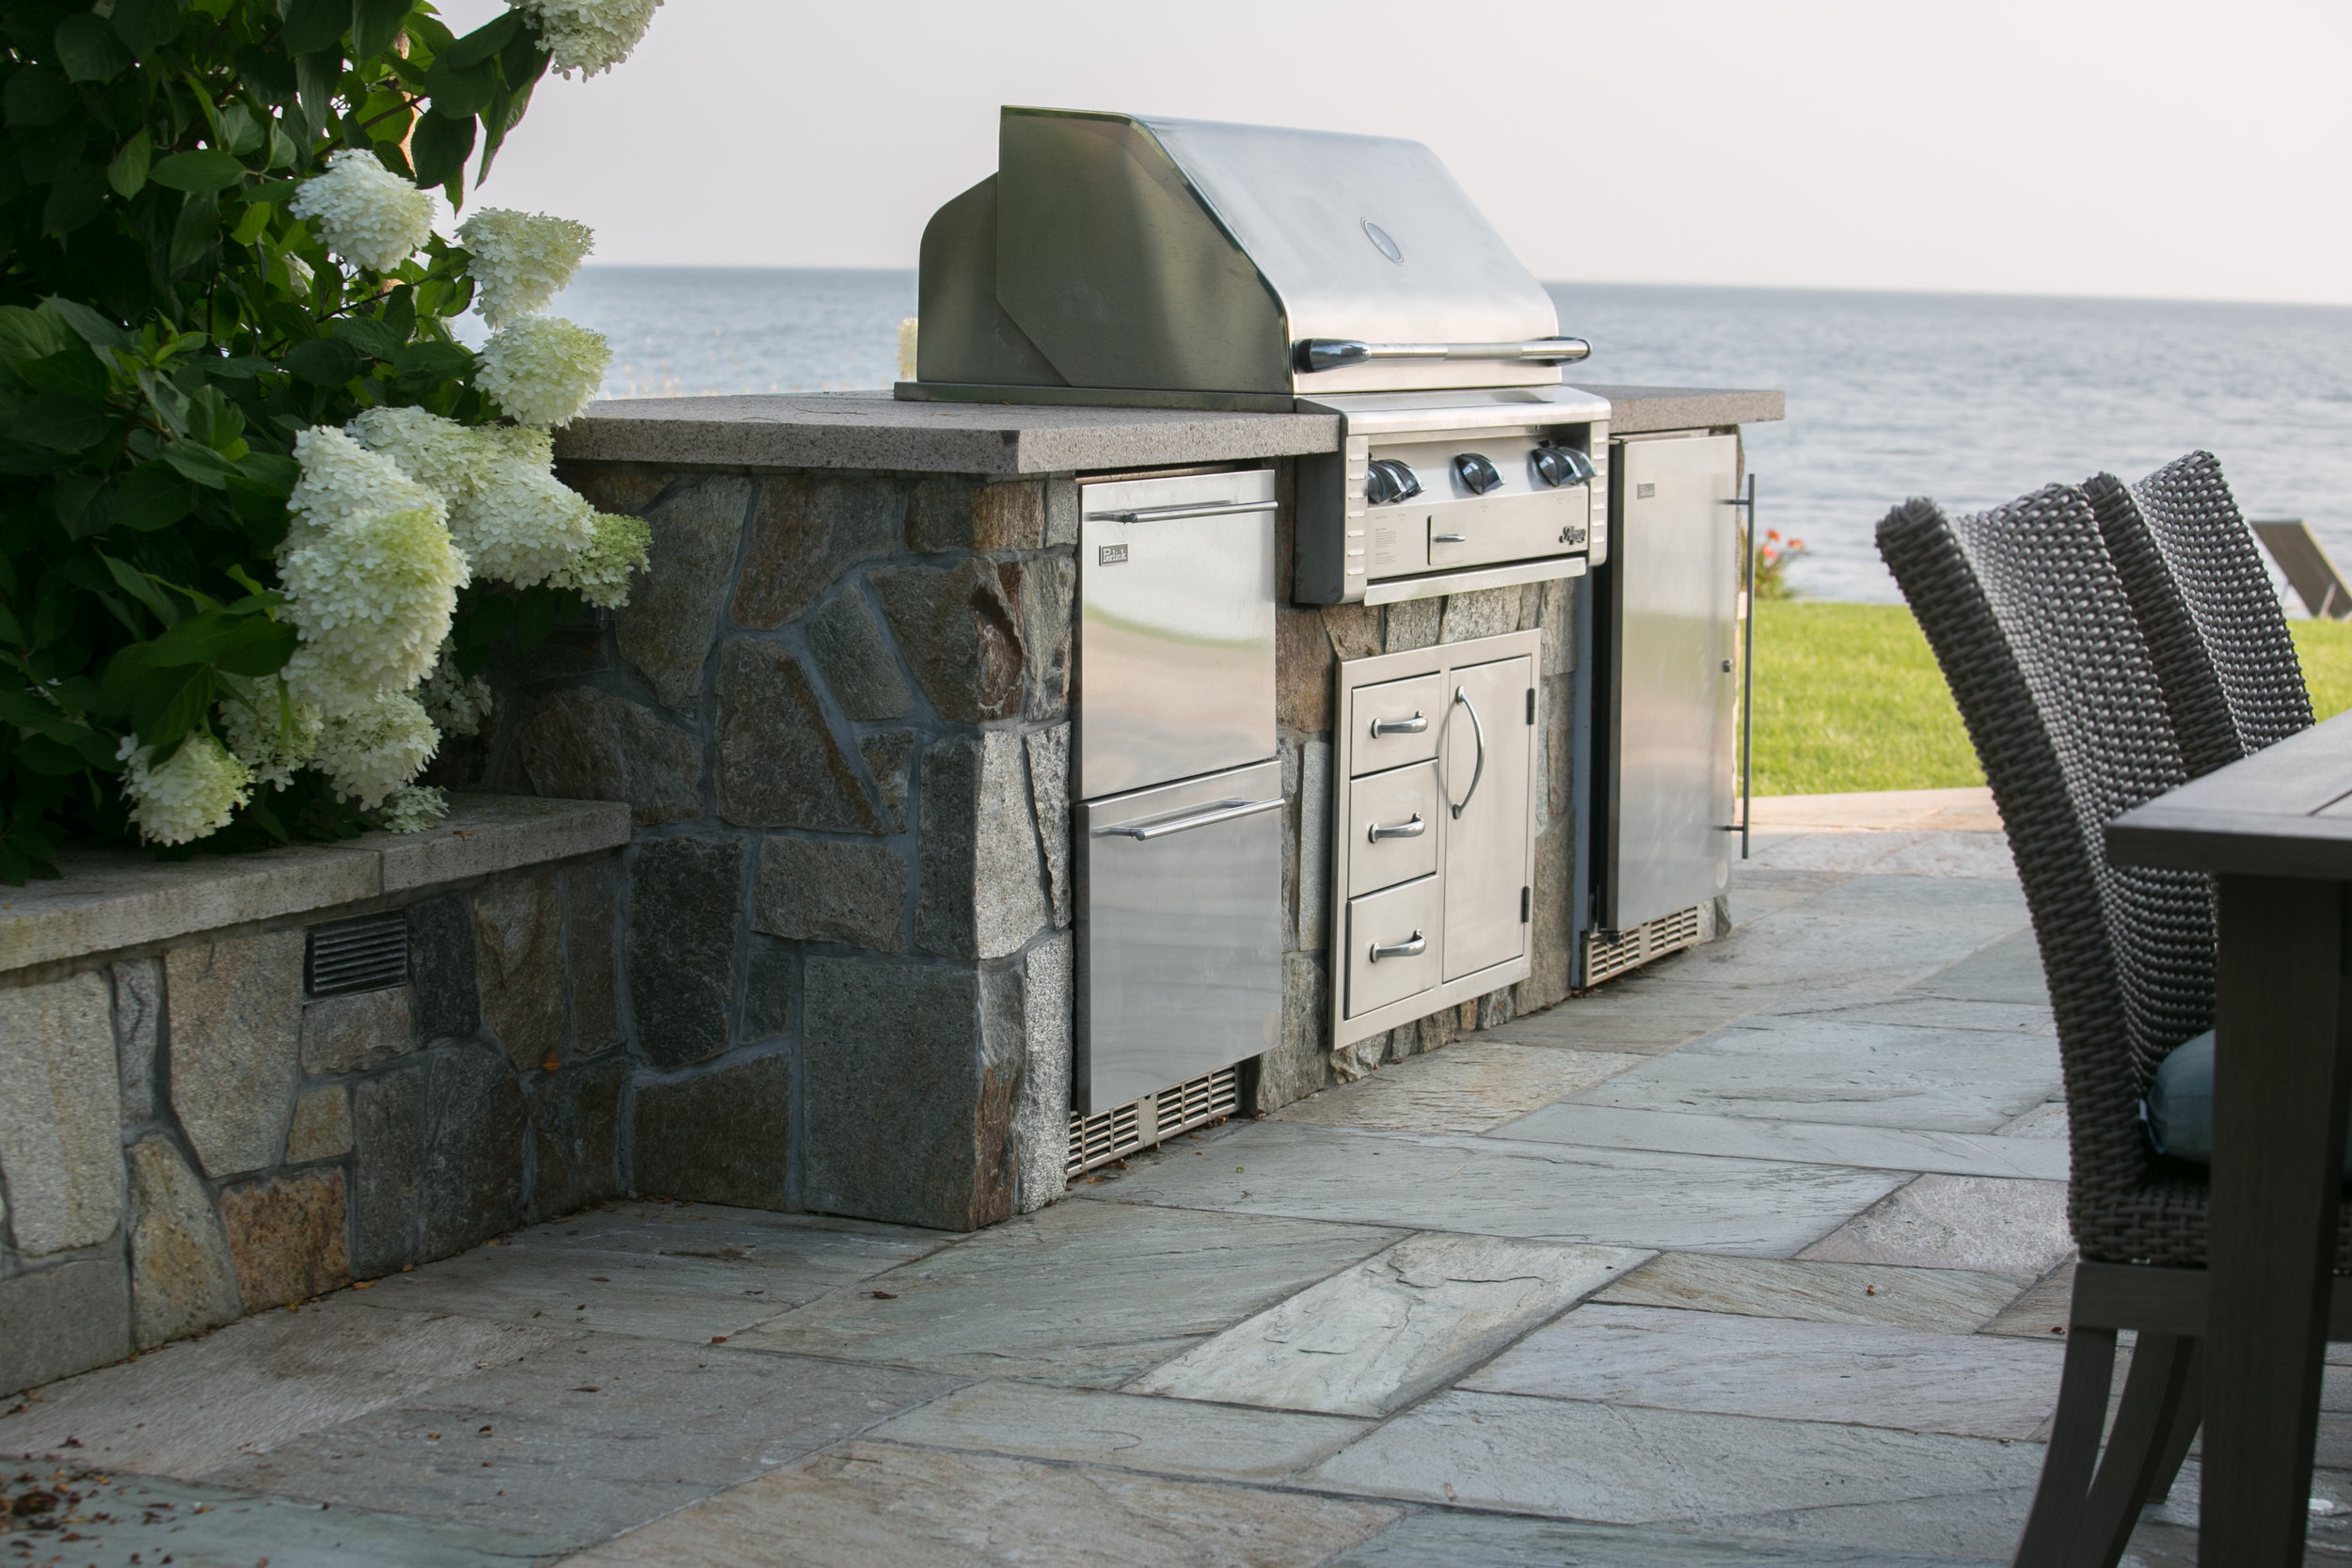 MATERIALS USED: FALMOUTH BUFF GRANITE COUNTER, OLD SPRUCE MOUNTAIN BBQ FACE